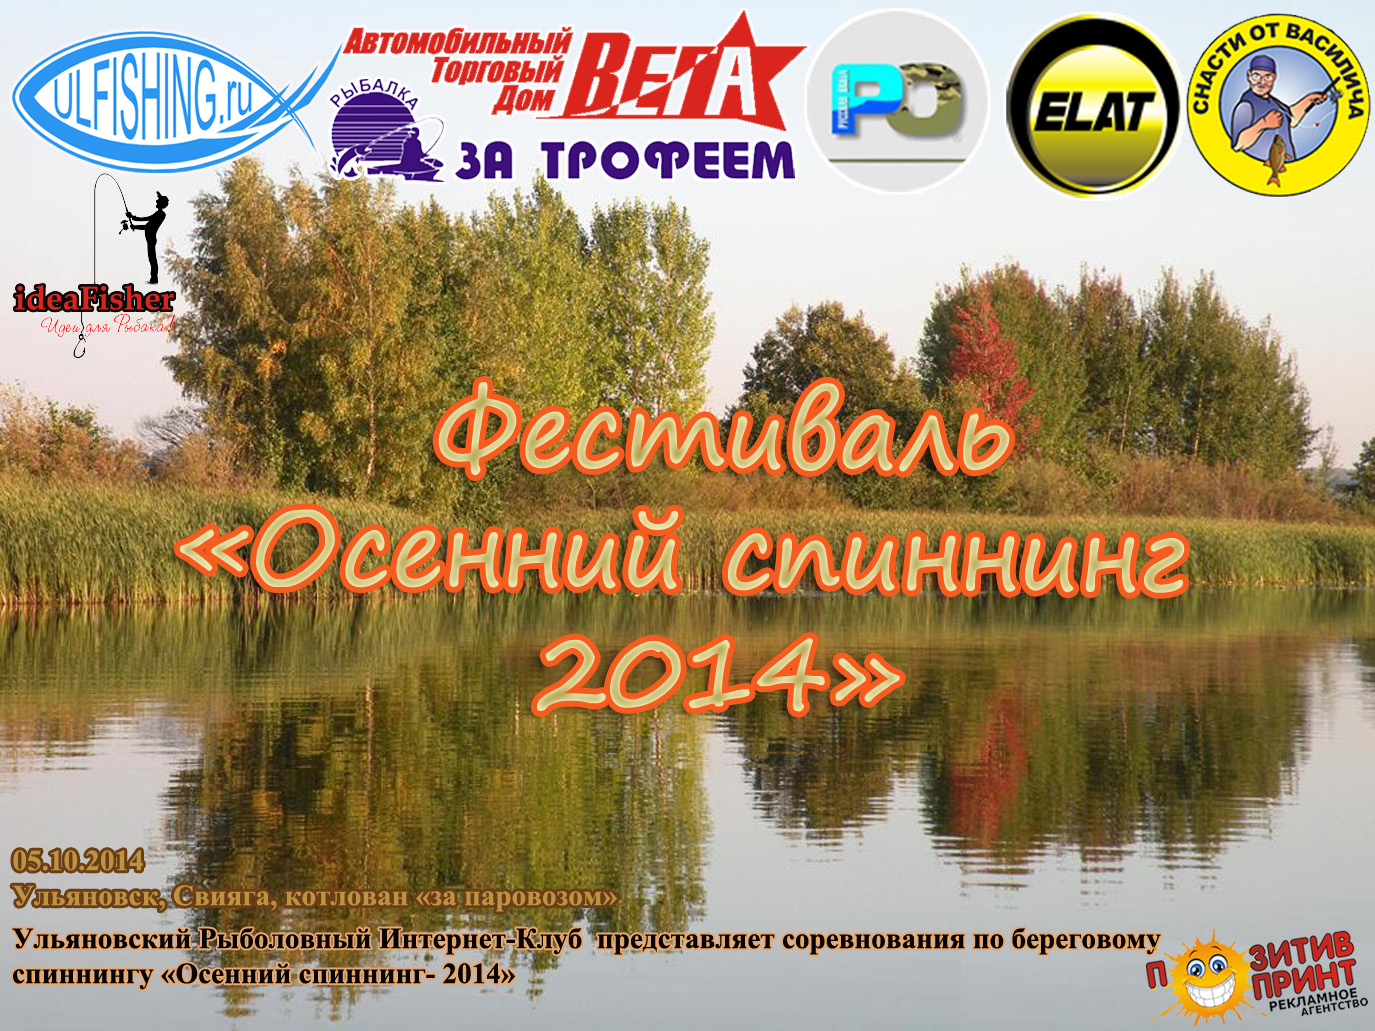 http://ulfishing.ru/images/stories/spinurik2014.jpg